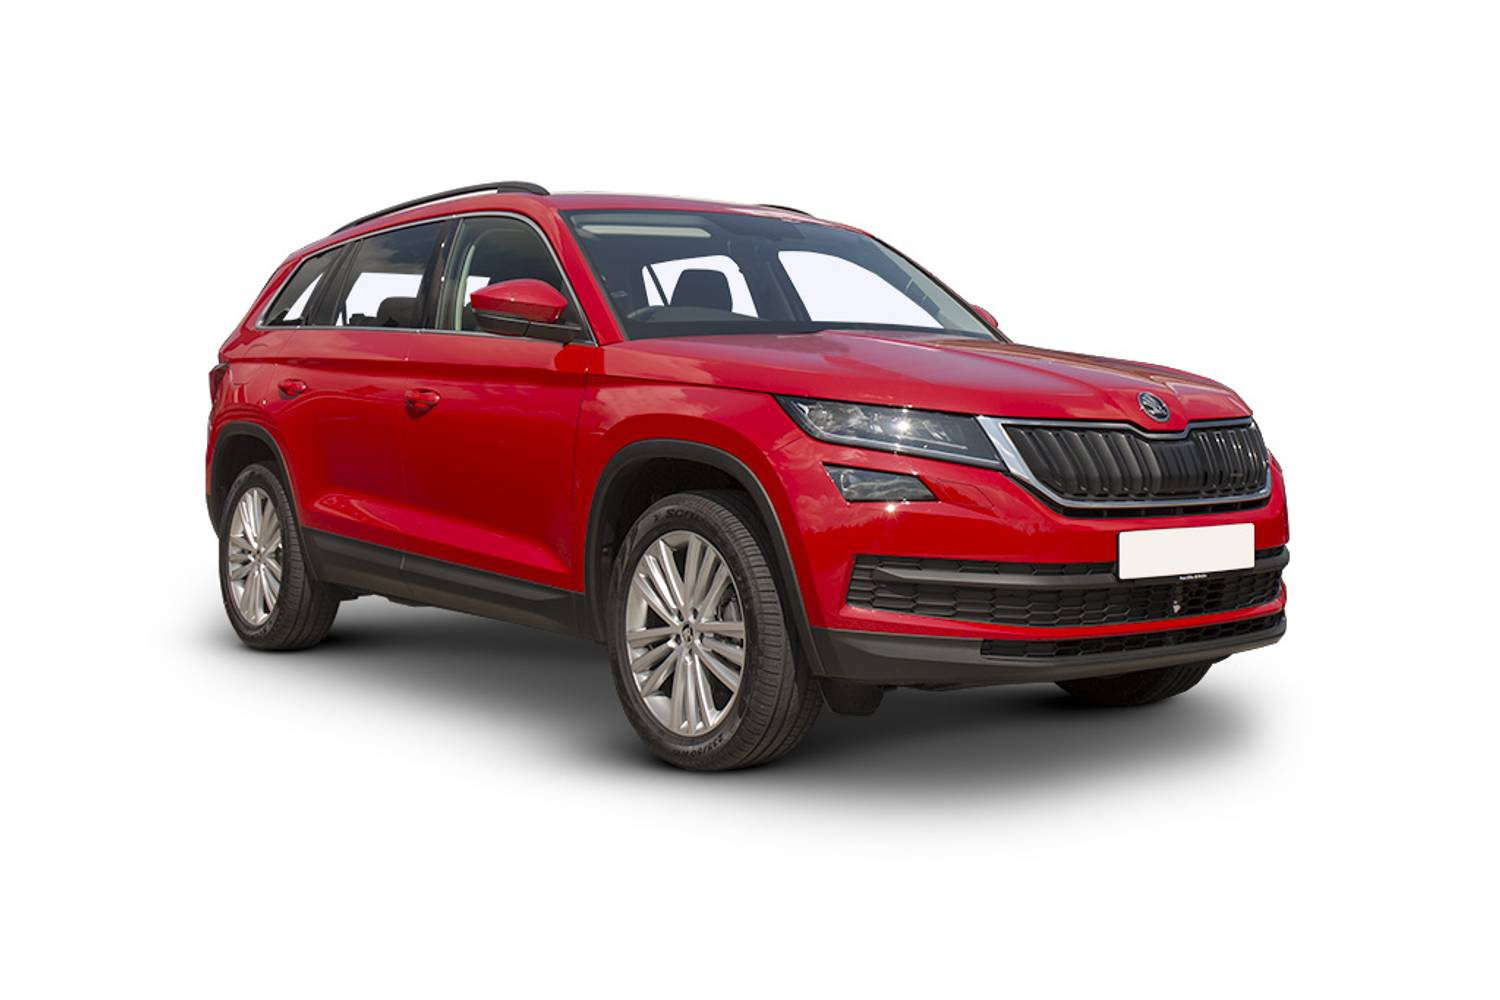 new koda kodiaq diesel estate 2 0 tdi 190 ps se l 4x4 5 door dsg 7 seats 2017 for sale. Black Bedroom Furniture Sets. Home Design Ideas